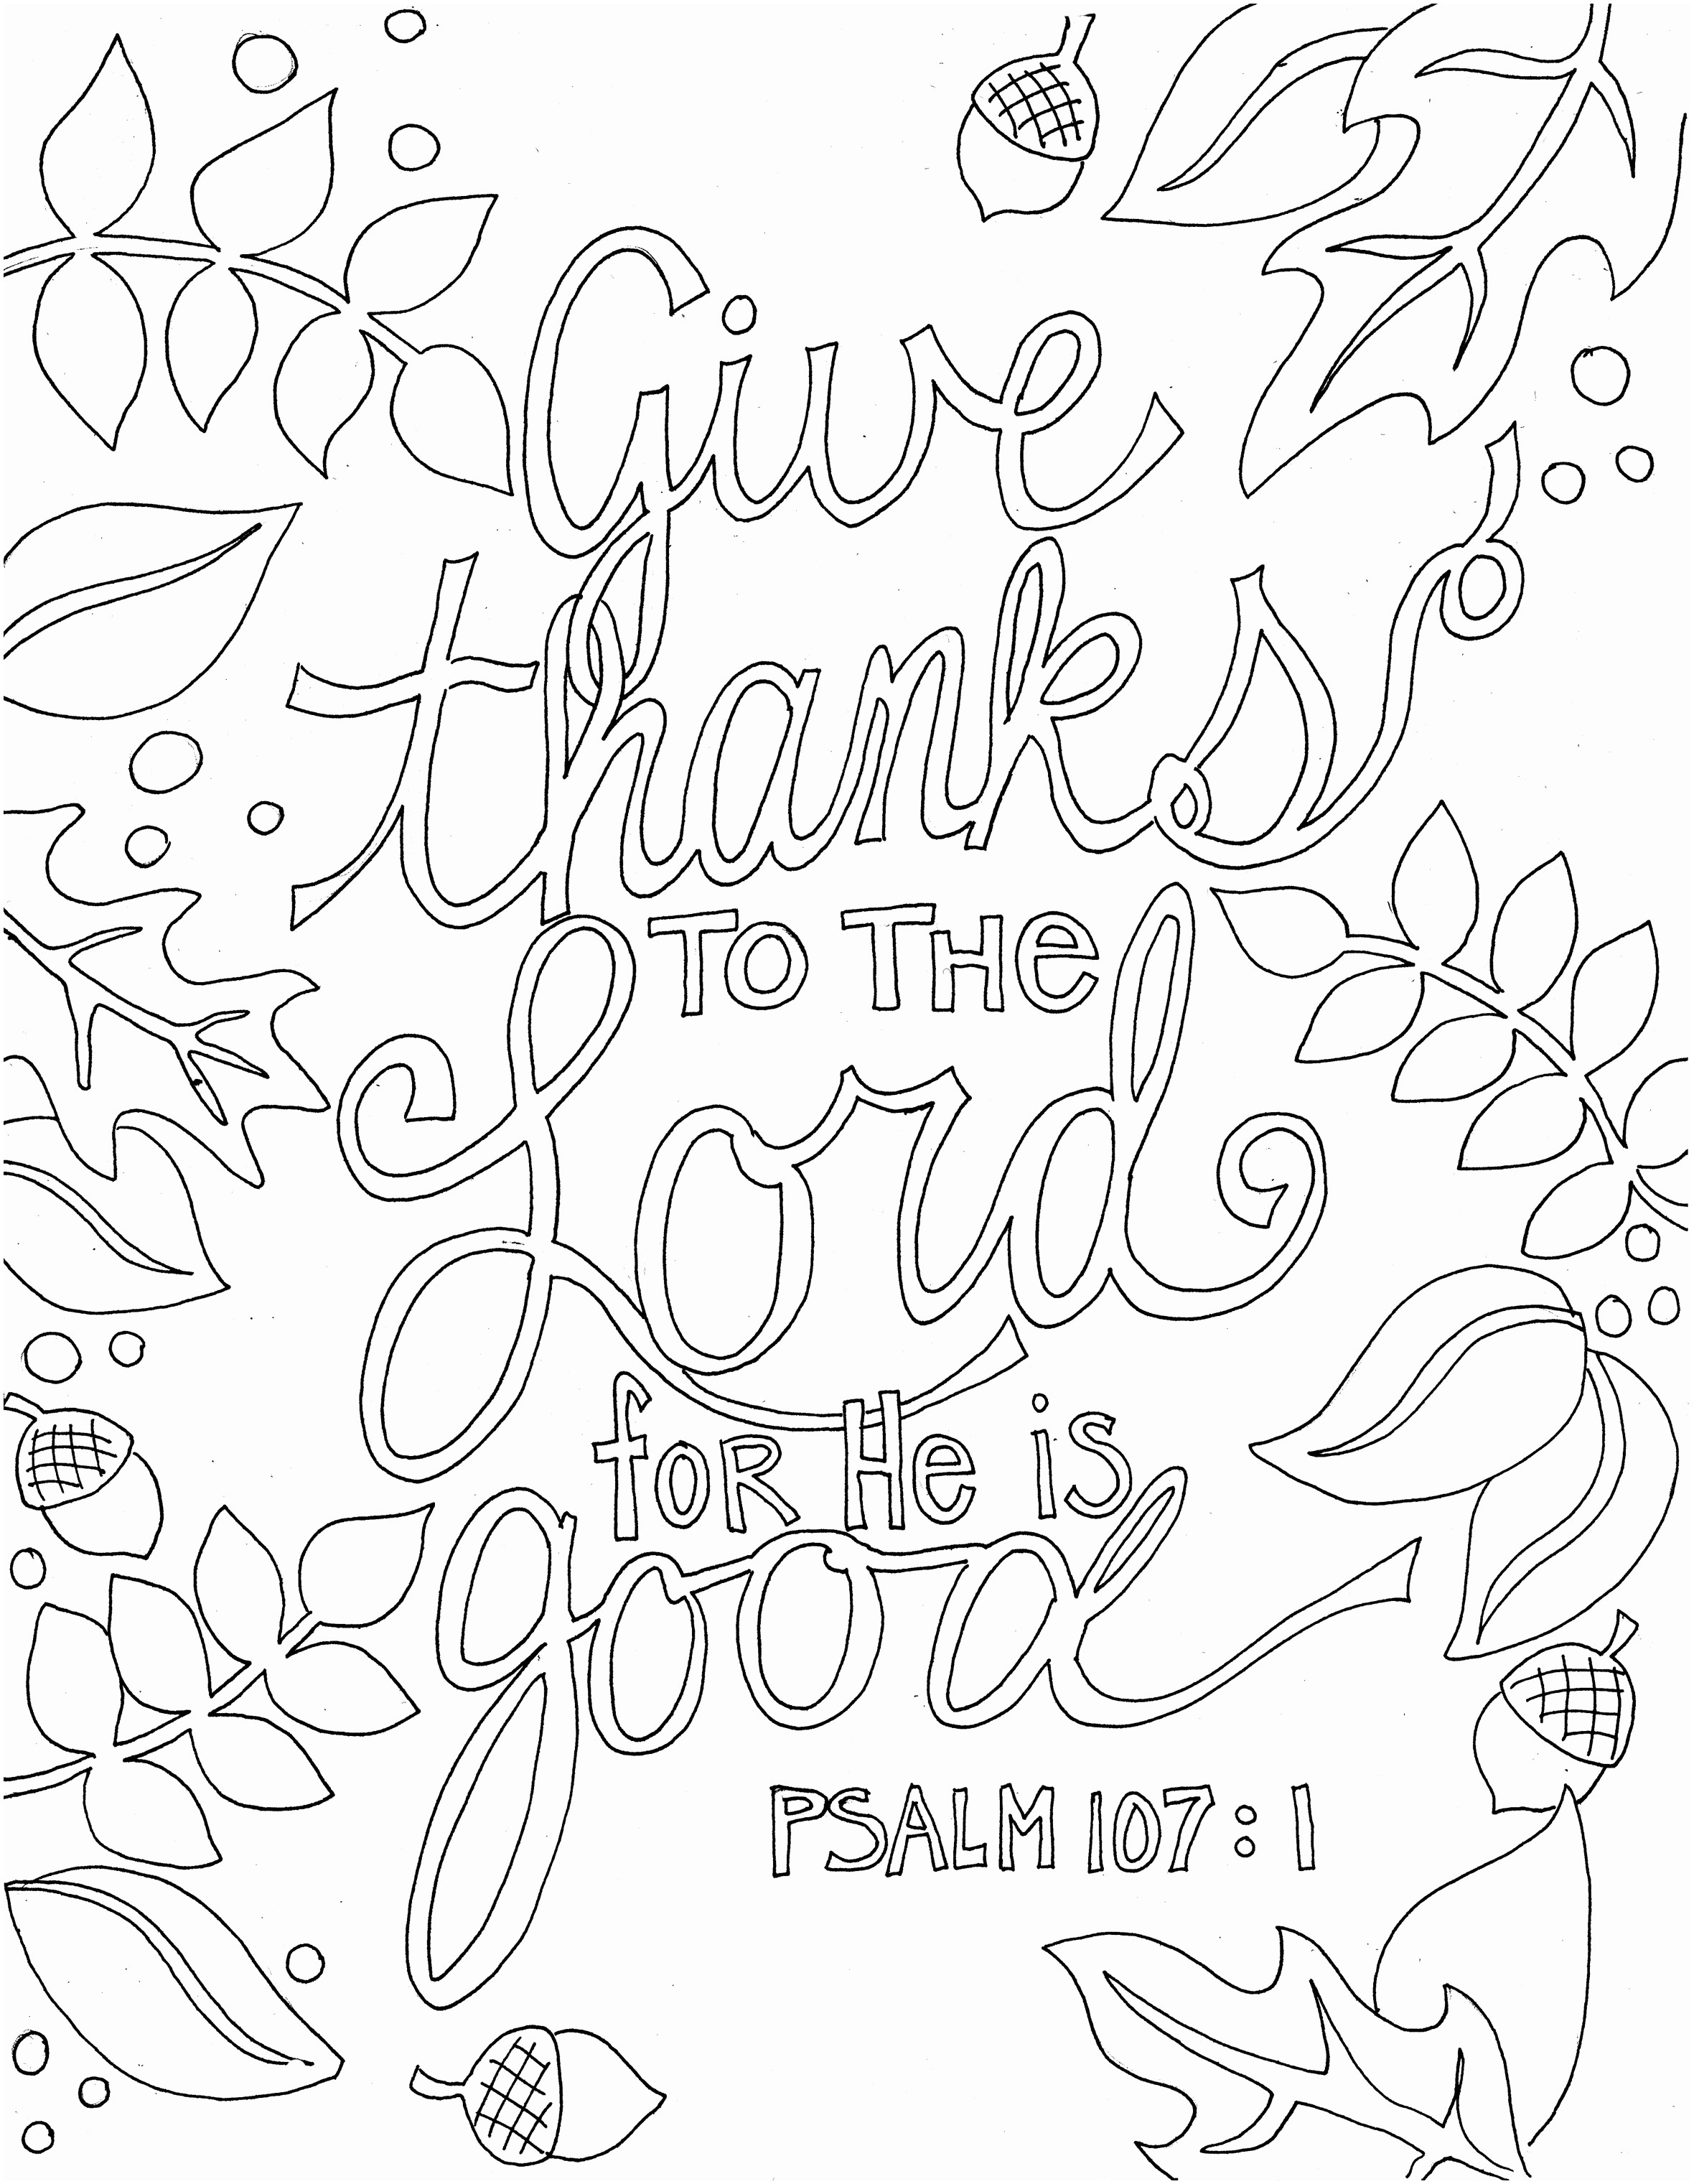 graphic about Free Printable Bible Coloring Pages With Scriptures identify 30 Totally free Printable Bible Coloring Internet pages with Scriptures